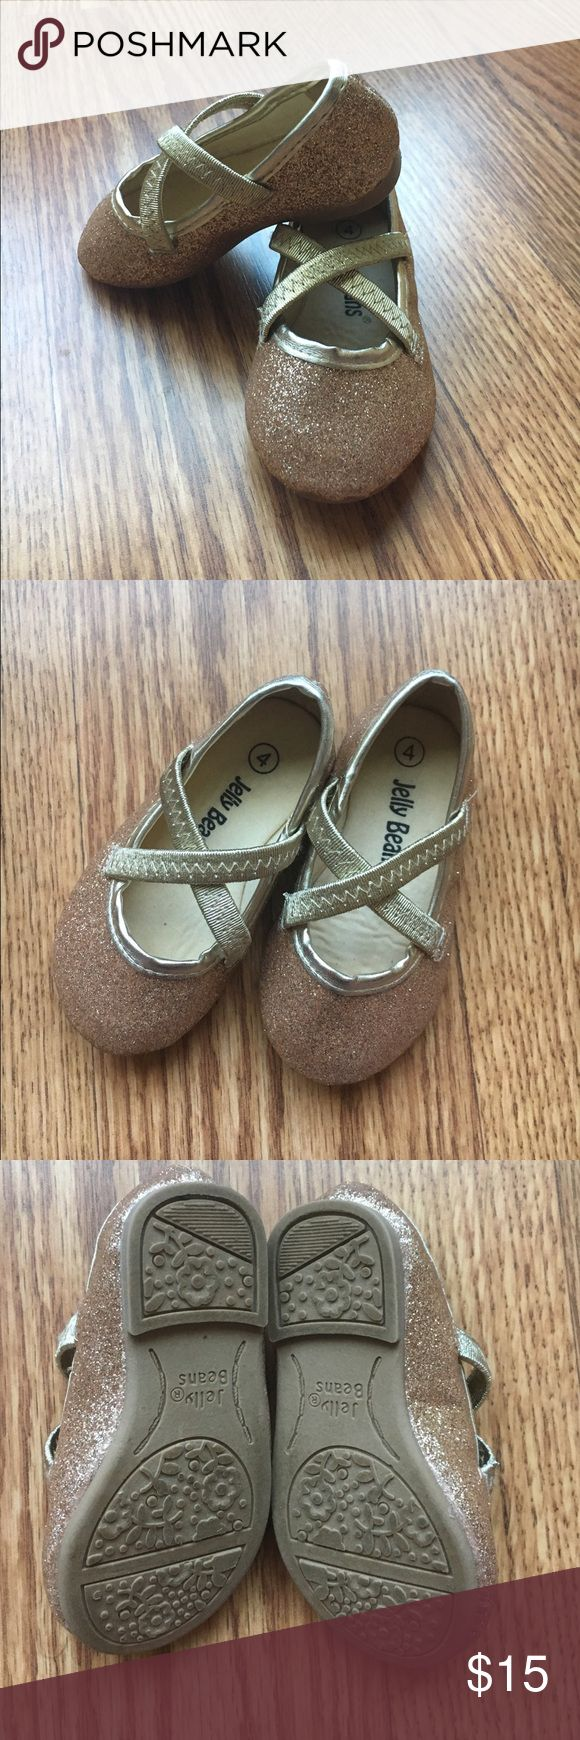 Girls gold sparkle flats Infant/toddler size 4 girls gold sparkle flats. Worn once for a wedding. Super adorable! No box Jelly Beans Shoes Dress Shoes